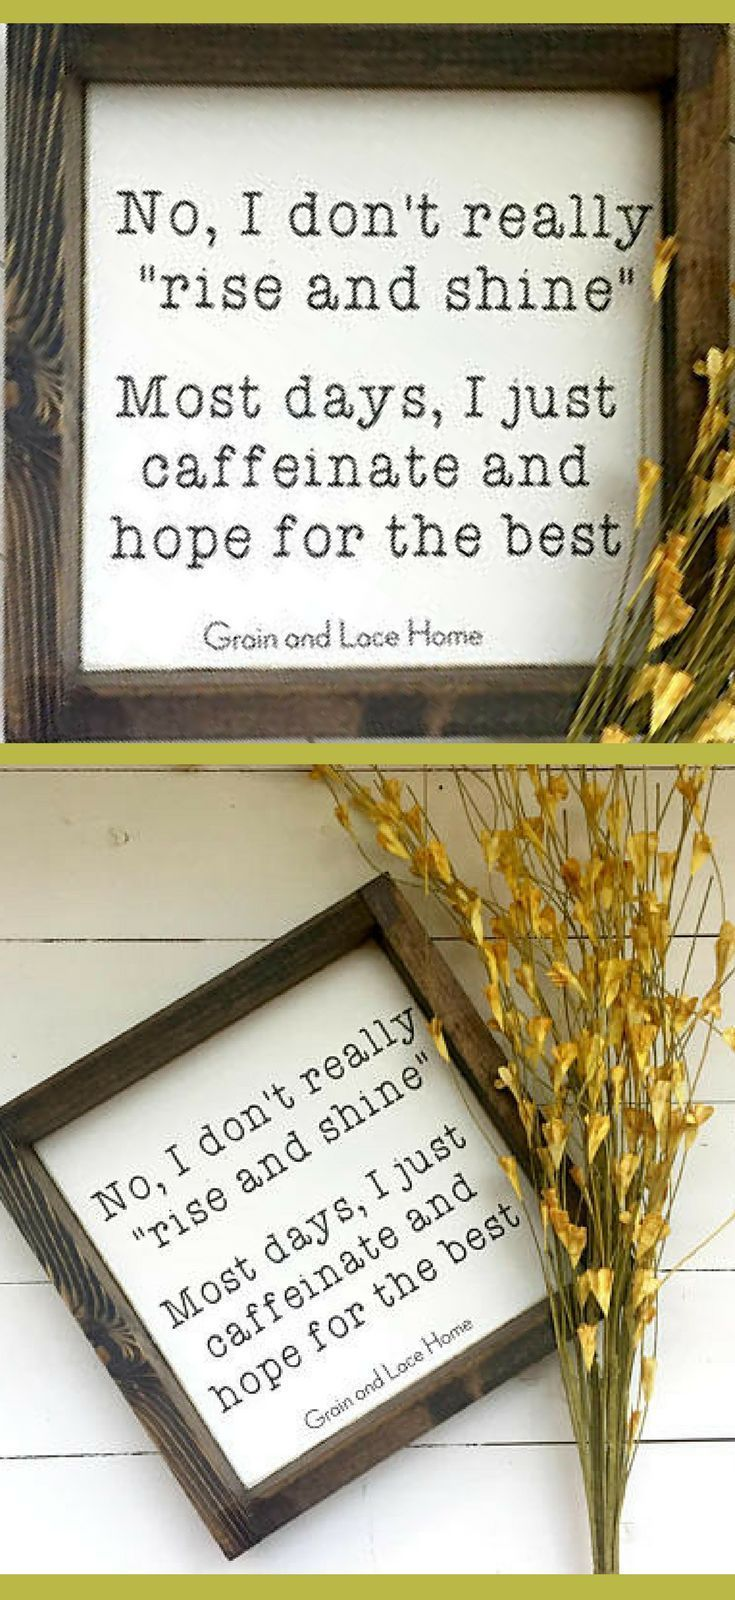 Ha! My morning ritual simply stated... Coffee Bar Sign, Coffee Sign, Coffee Station Sign, Caffeinate and Hope For the Best, Coffee Club, Coworker Gift, Funny Gift Idea, Farmhouse Coffee Bar, Fixer Upper Kitchen, Farmhouse Kitchen Decor, Rustic Farmhouse, Morning Coffee Sign, Caffeinated, Coffee Wood Sign, Coffee Bar Decor, Rustic Wall Decor #ad #coffeesigns